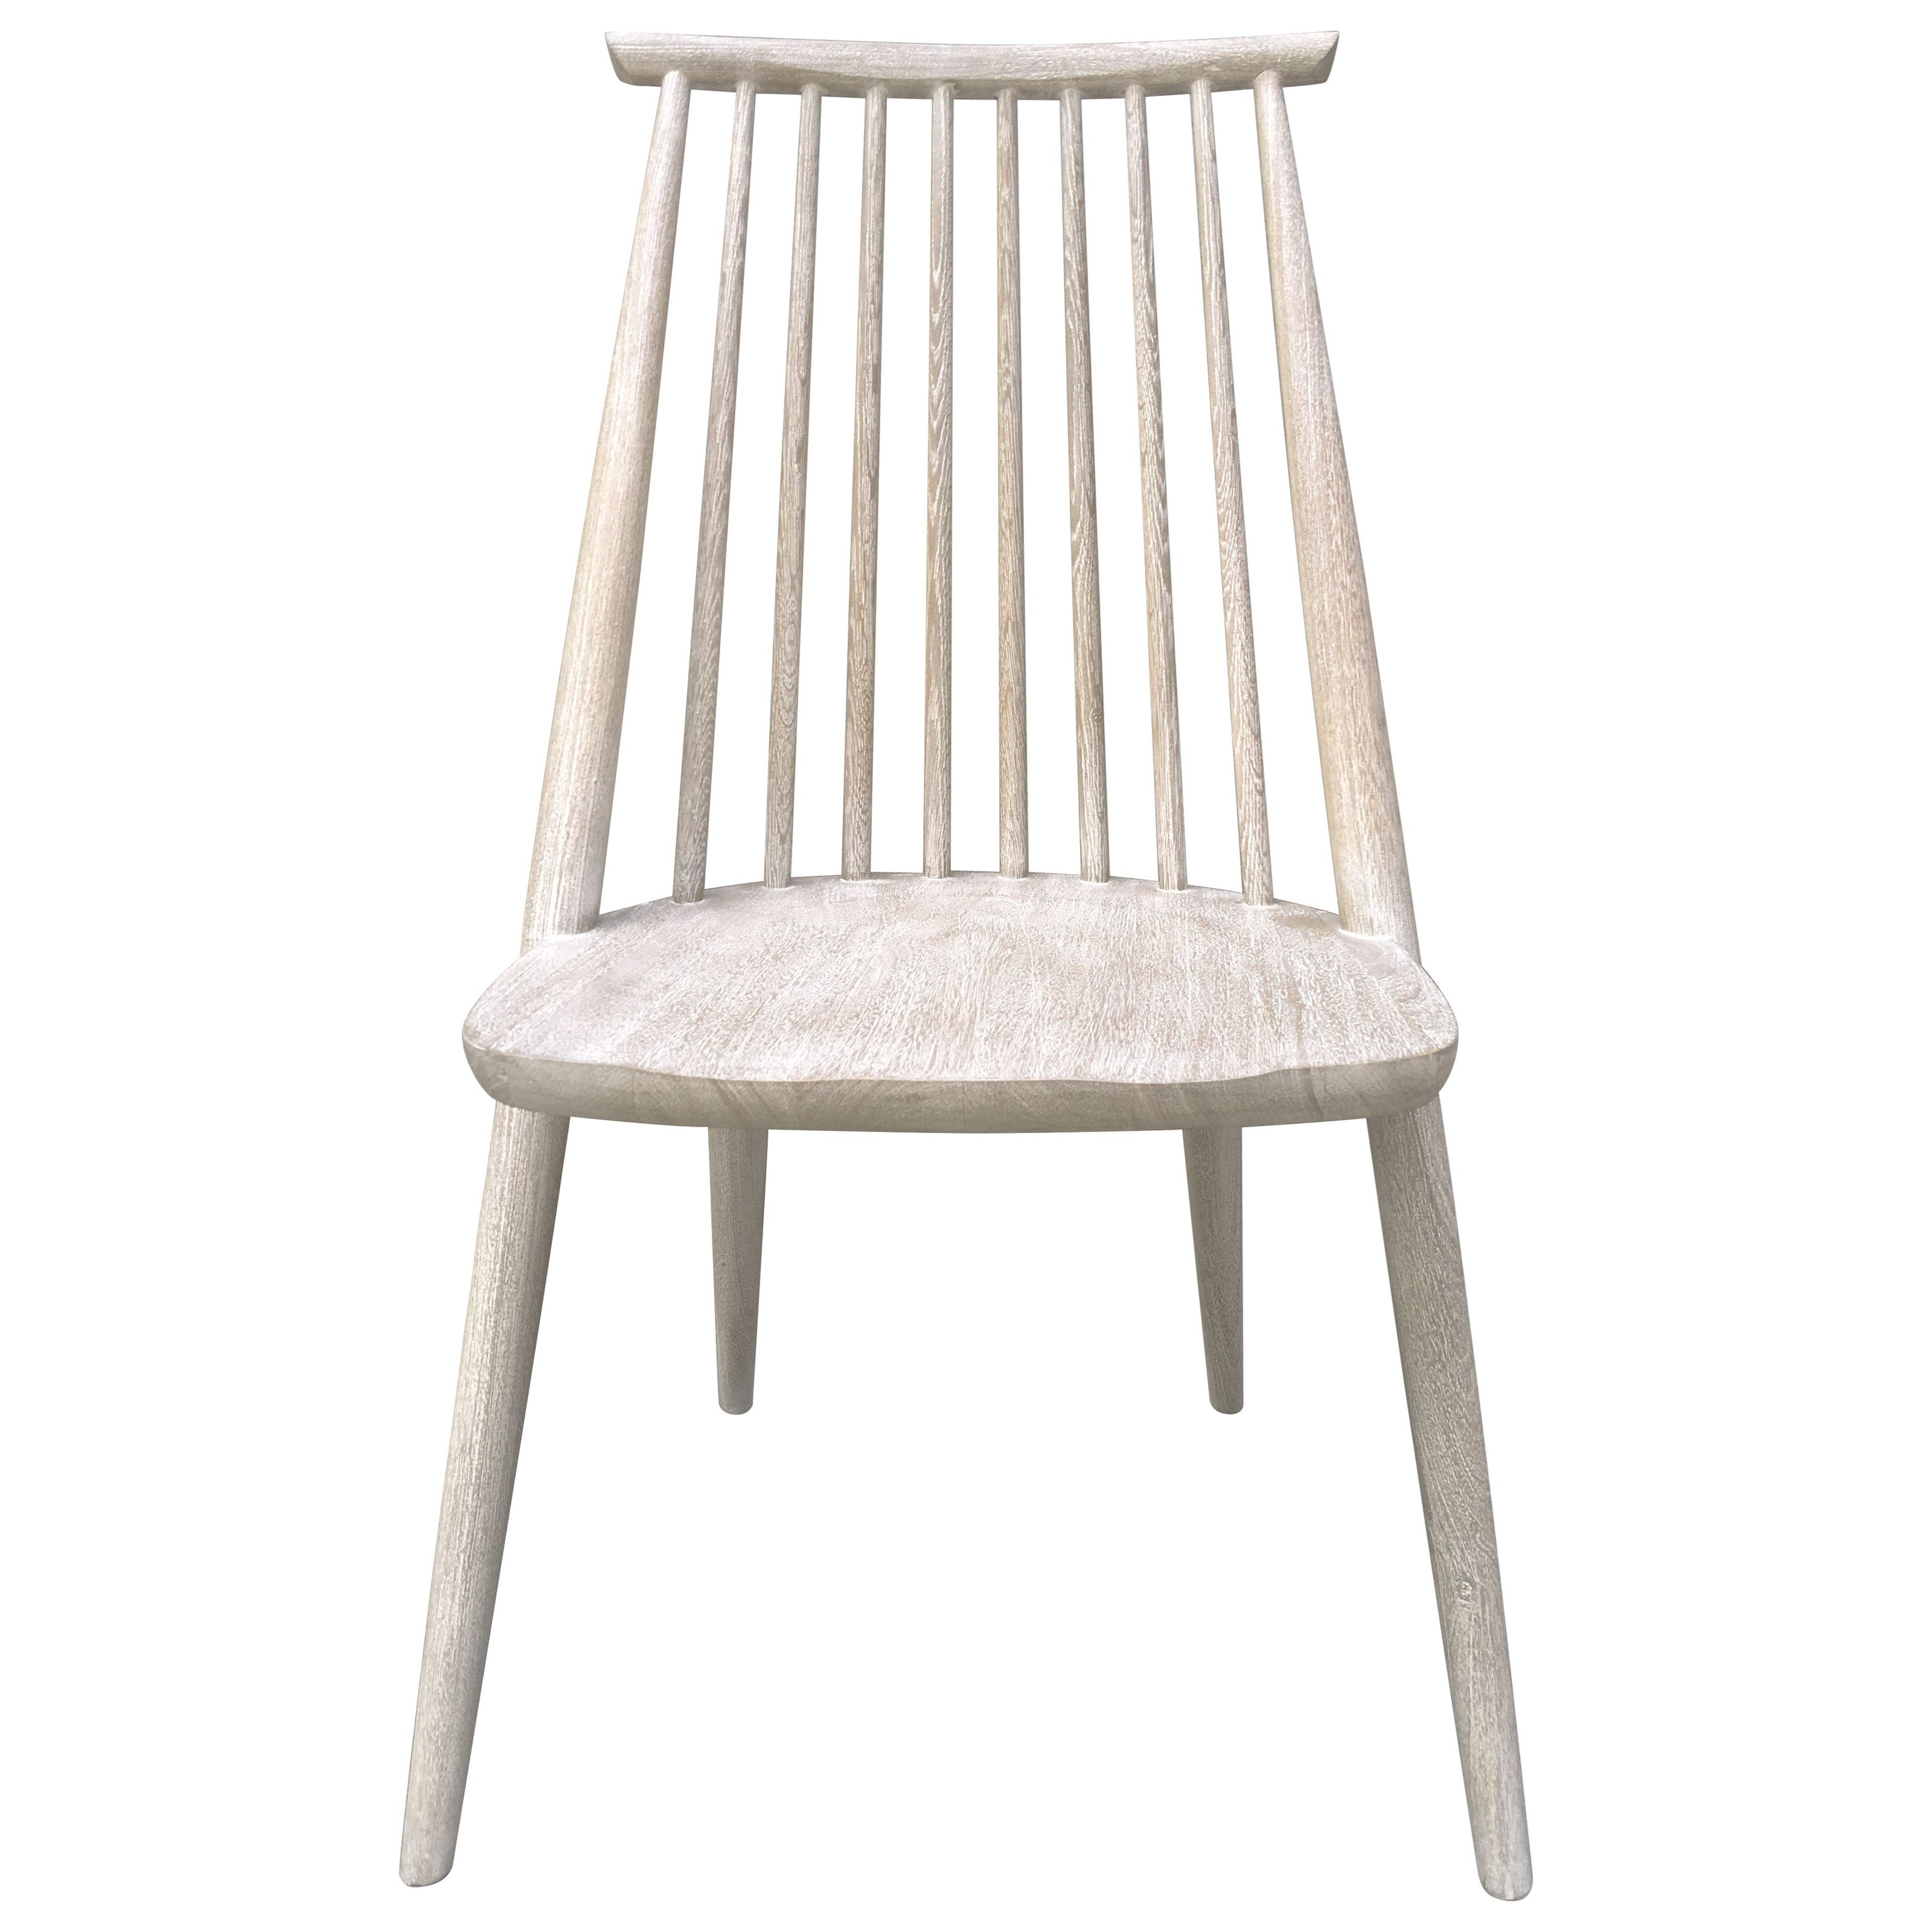 Bellevue Dining Chair by Zuo at Nassau Furniture and Mattress